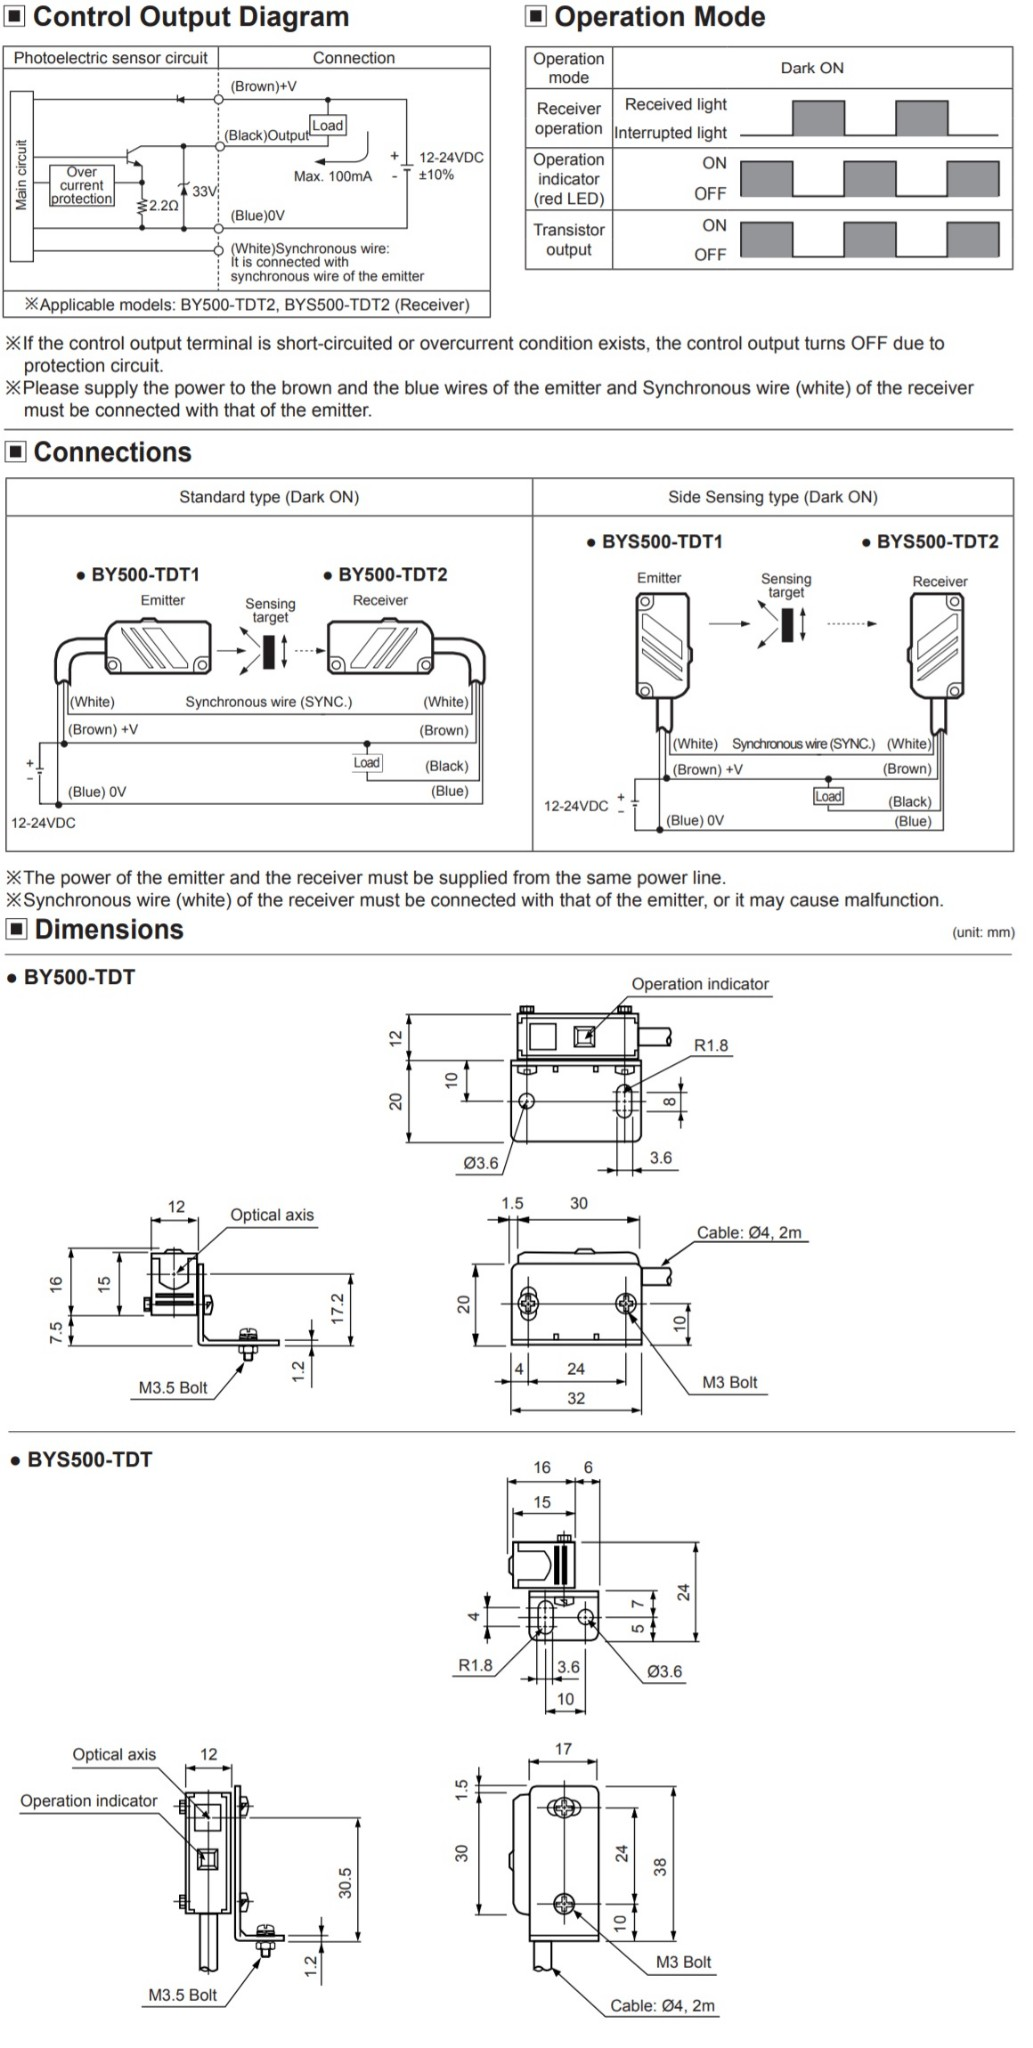 Sick Photoelectric Sensor Wiring Diagram Best Image Schematic E3a2 Switch Page 2